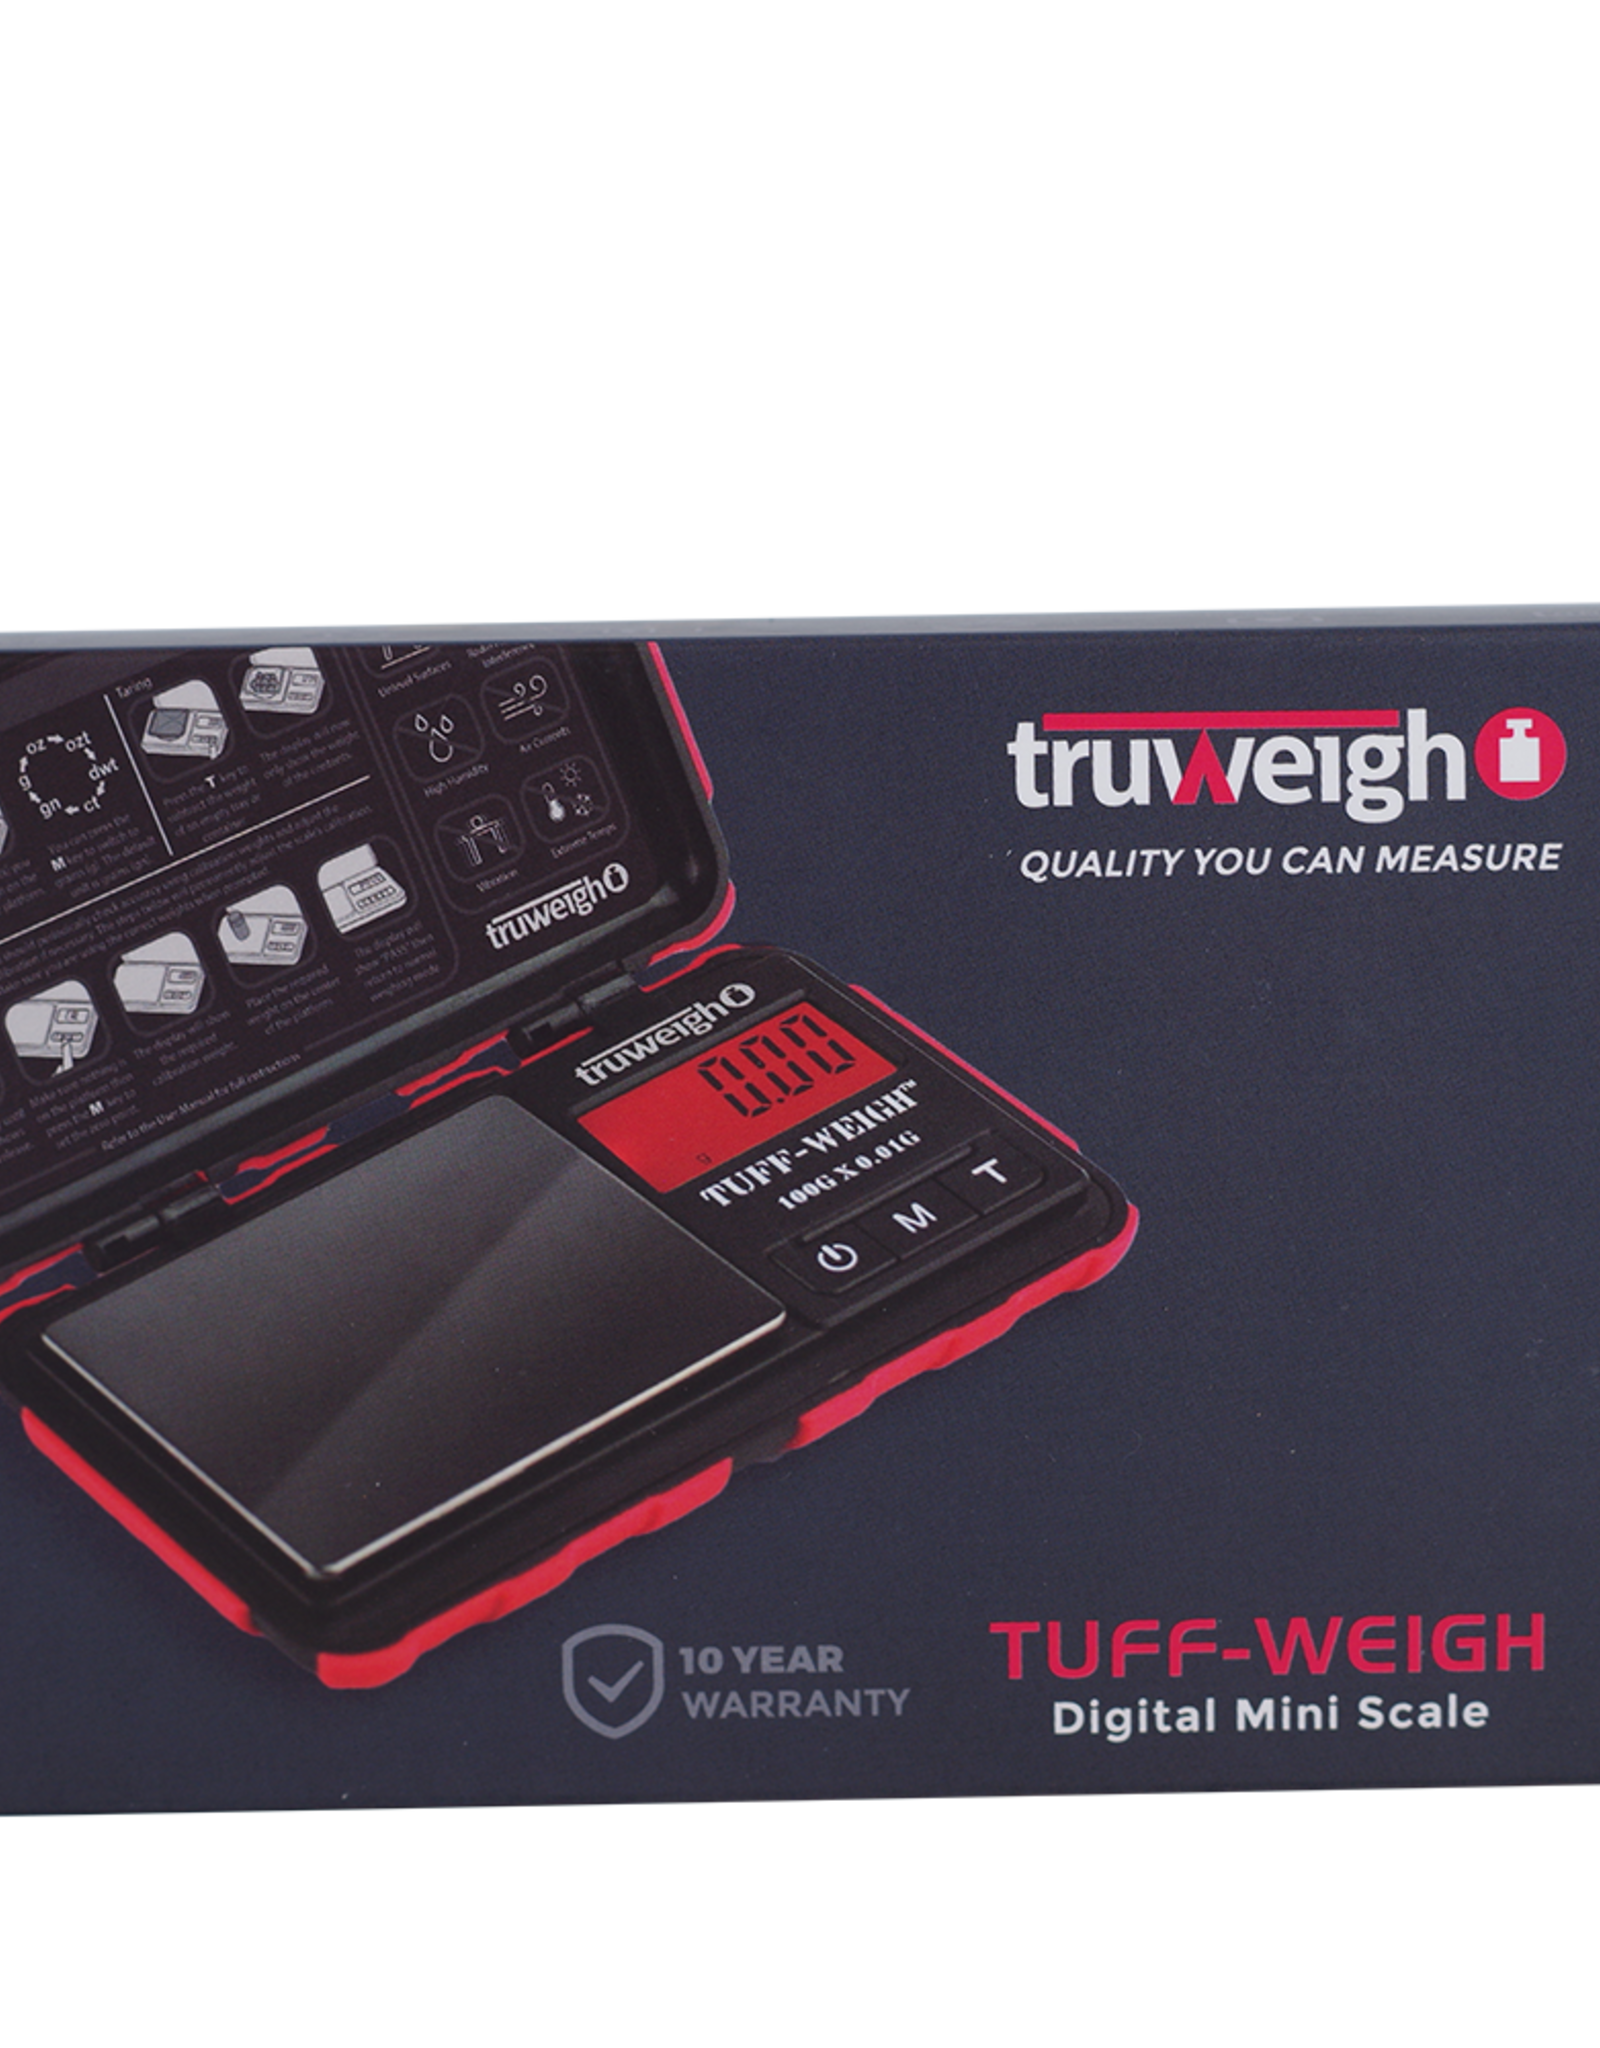 Truweigh Tuff-Weigh Digital Mini Scale 100g